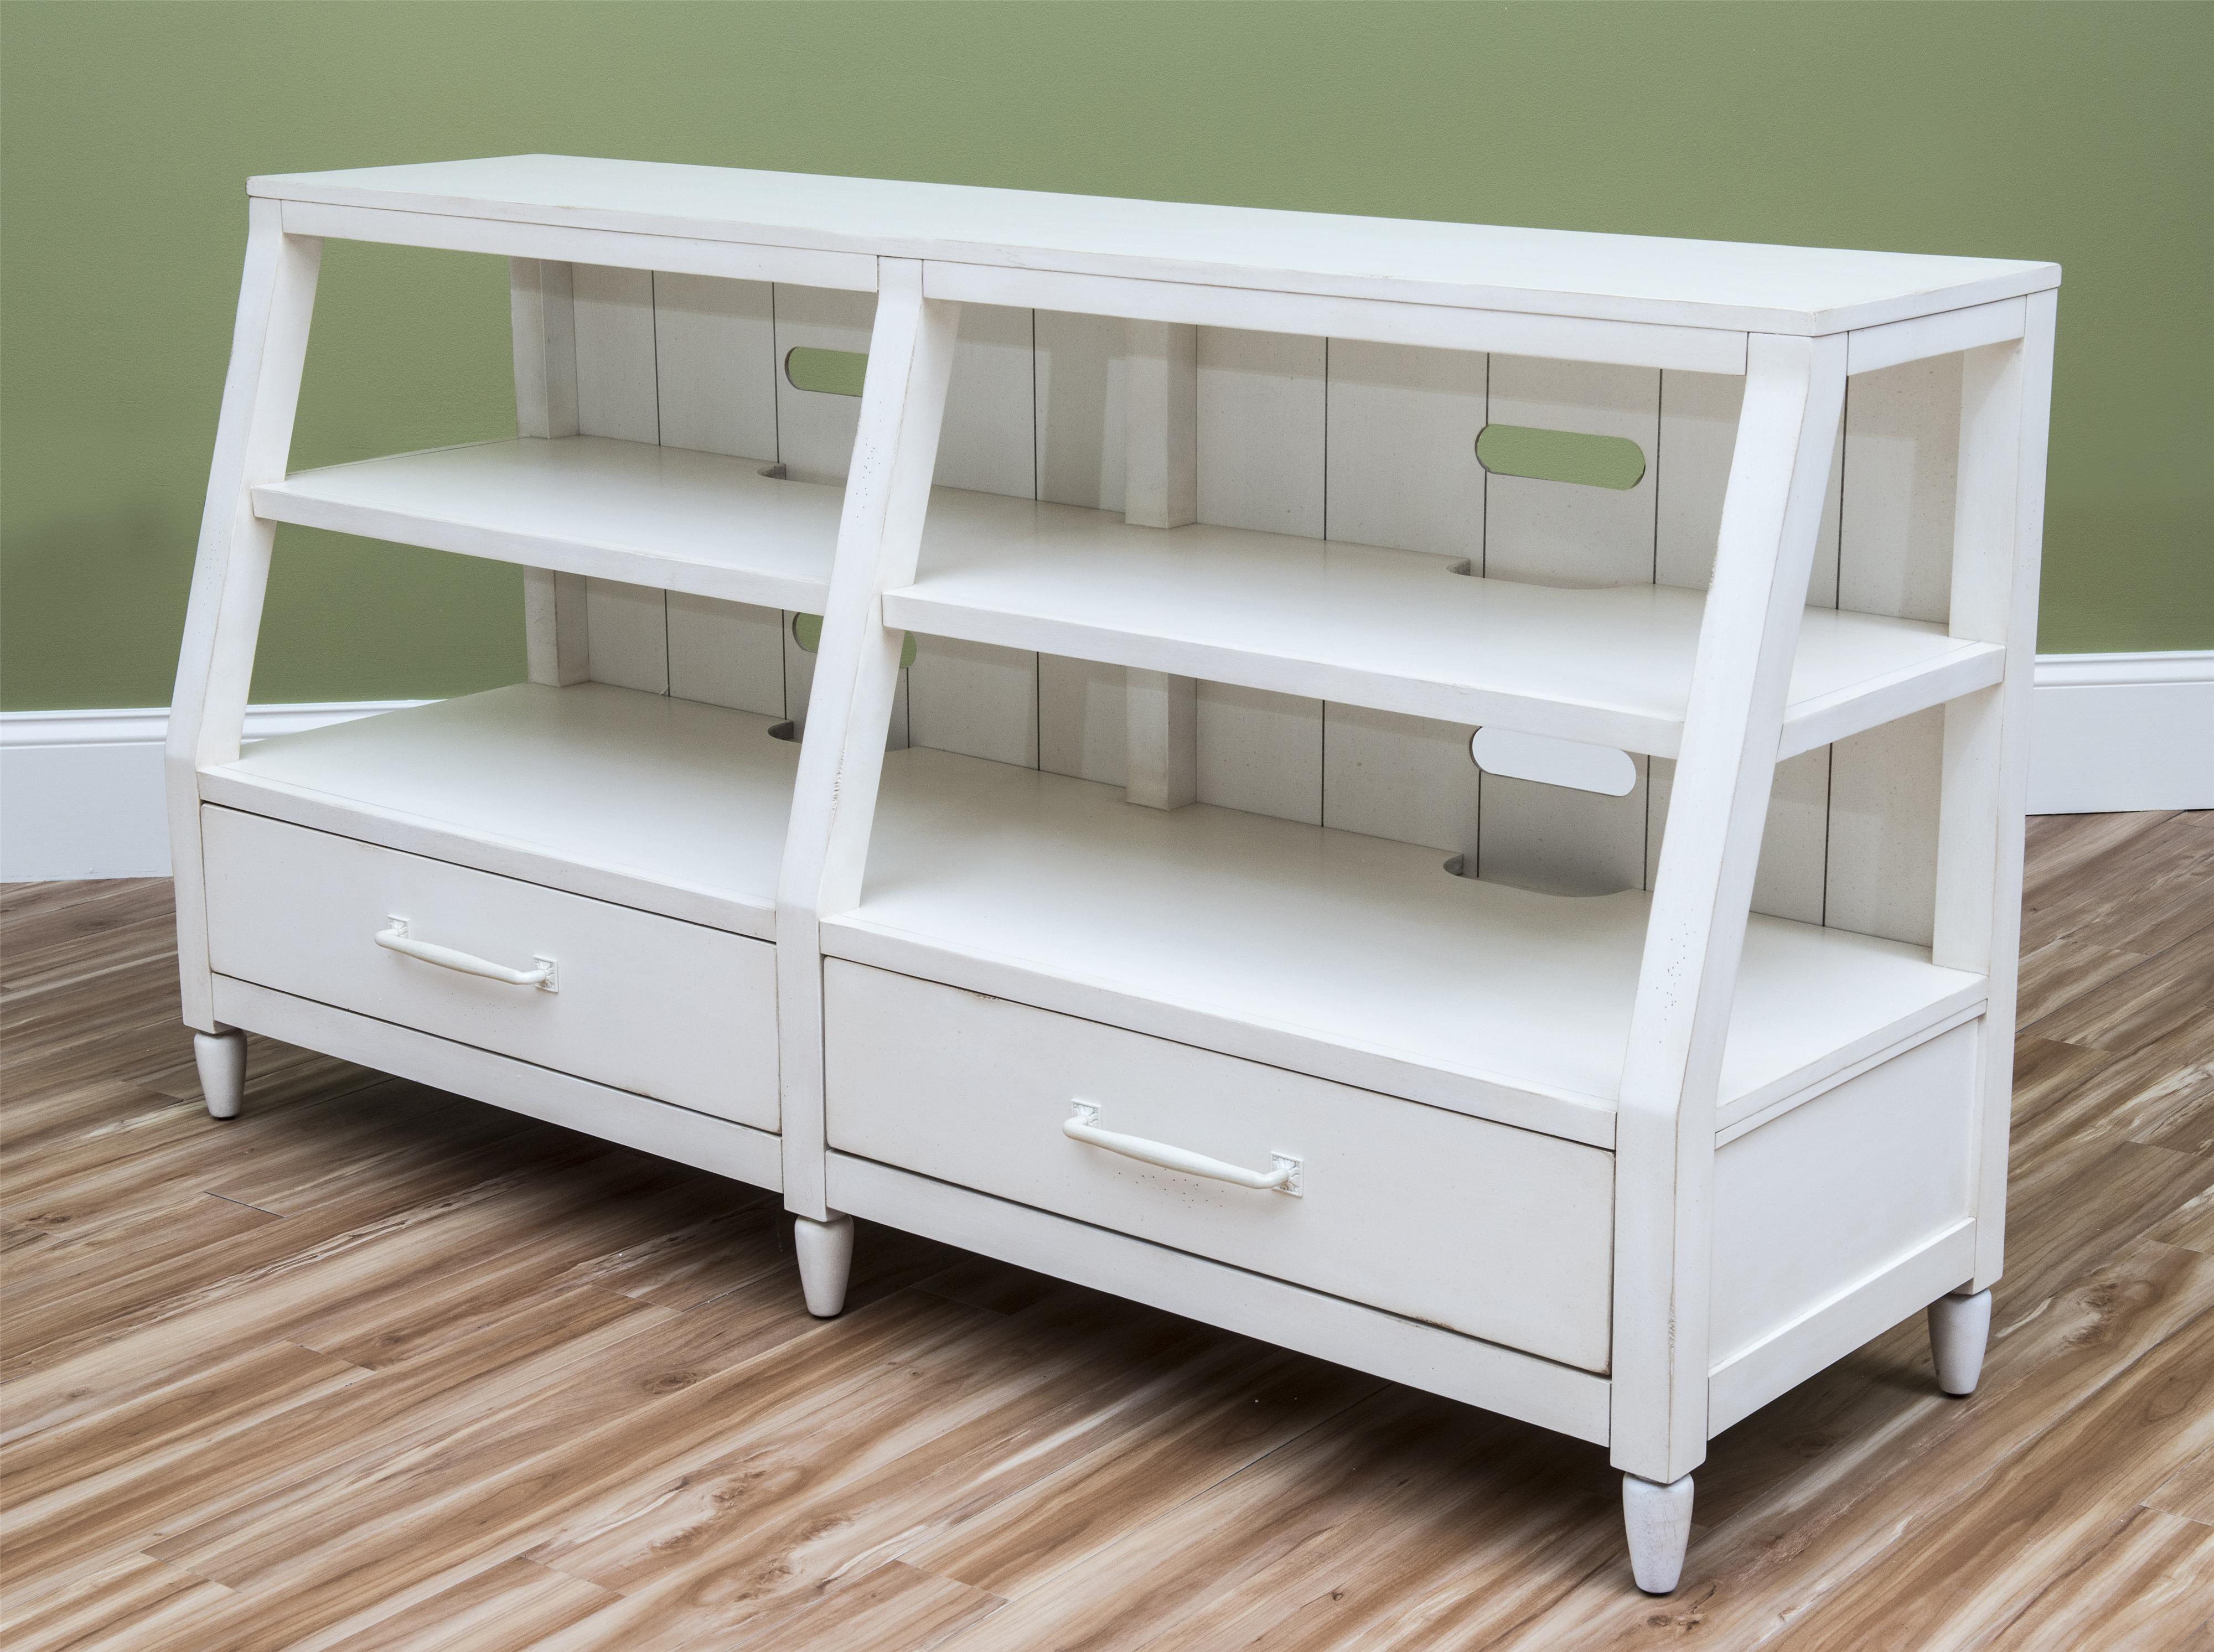 Carolina Preserves by Klaussner Sea Breeze Splish Splash-White Entertainment Console - Item Number: 424-070 CONS